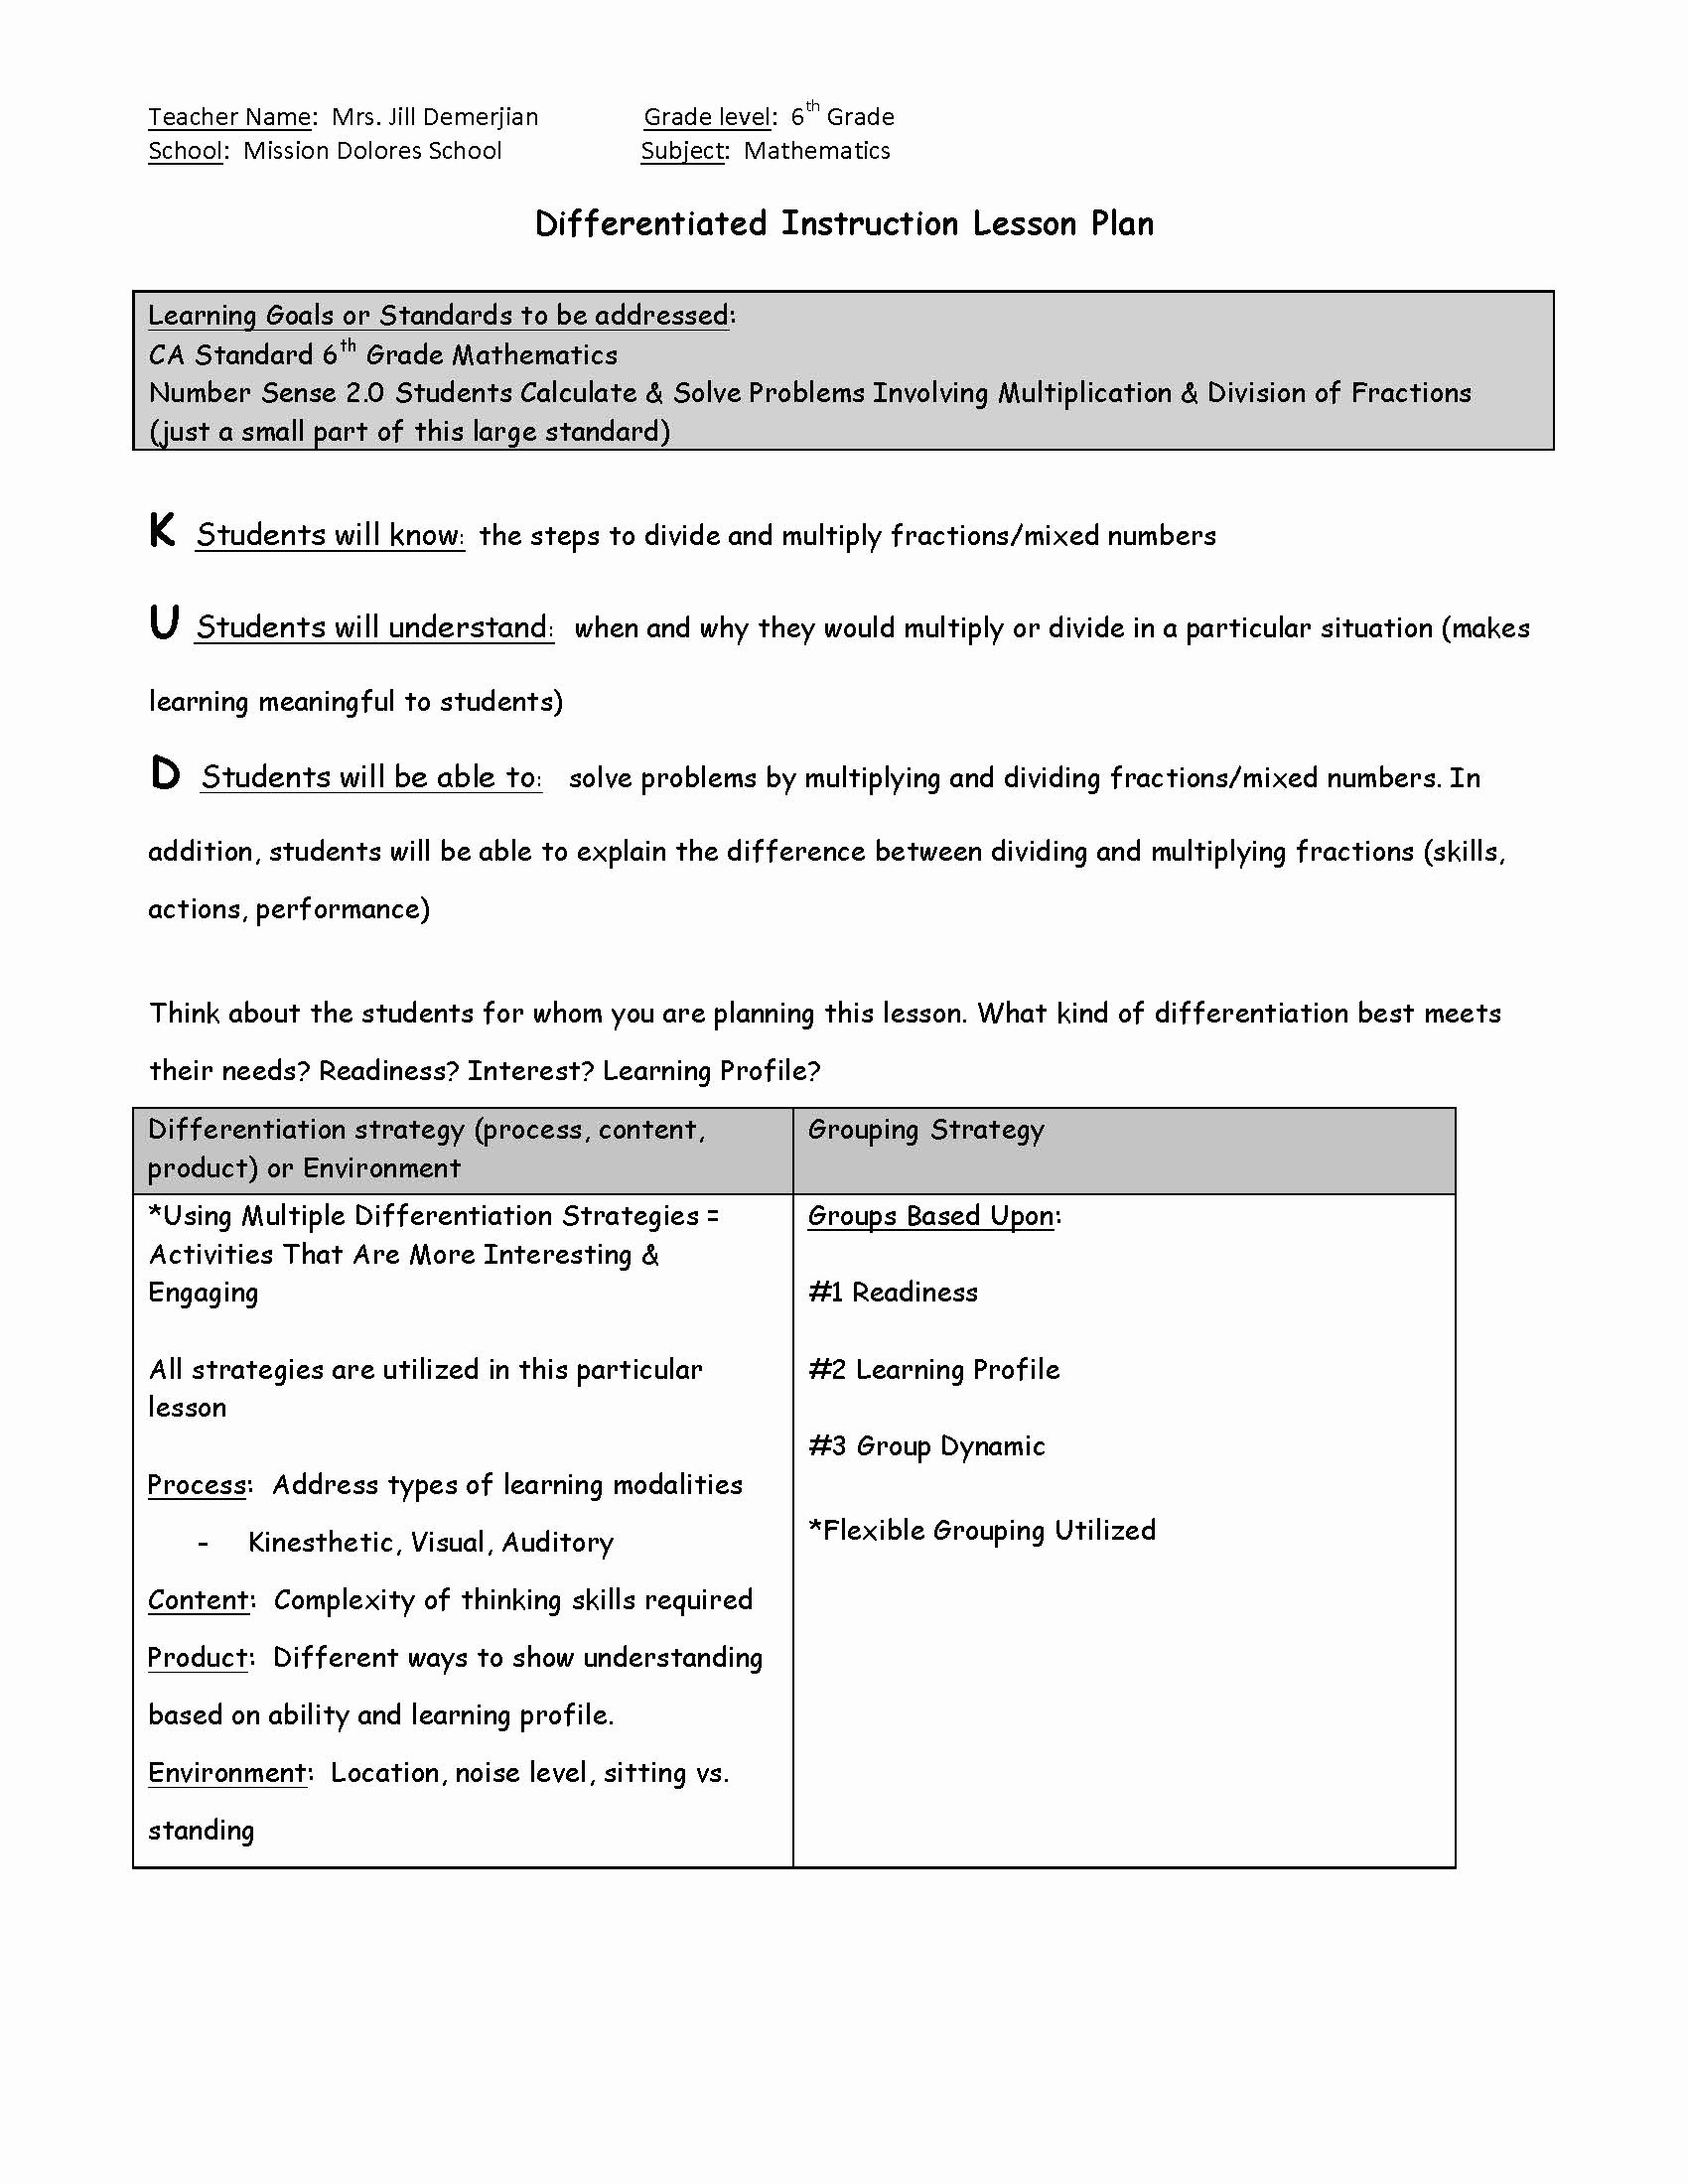 Differentiated Instruction Lesson Plan Template Inspirational Differentiated Instruction Lesson Template Pdf format